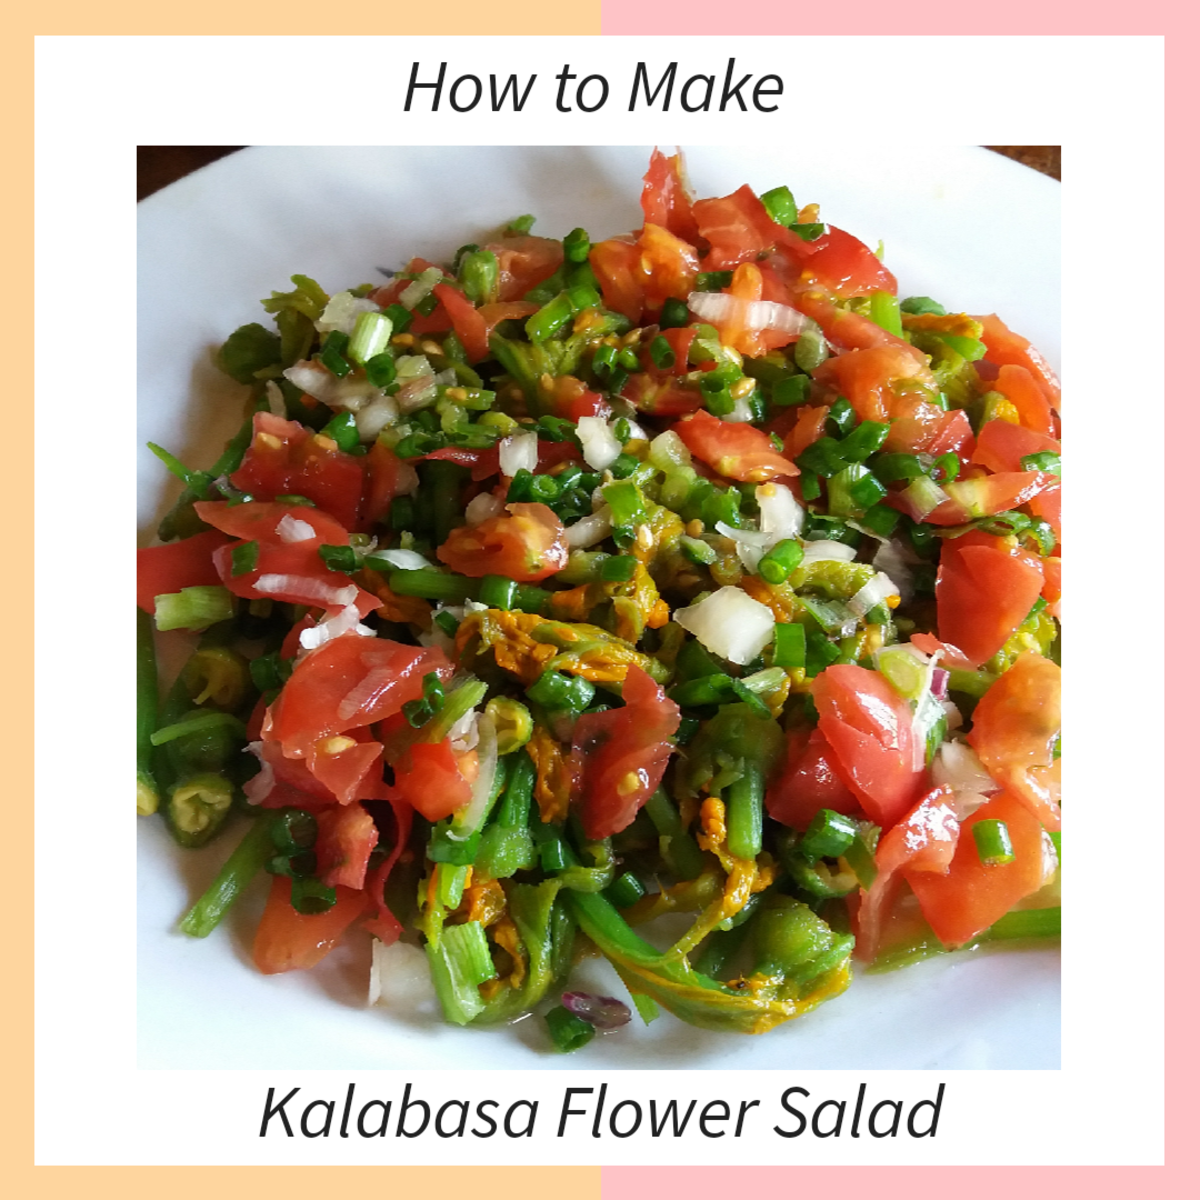 How to Make Kalabasa Flower Salad